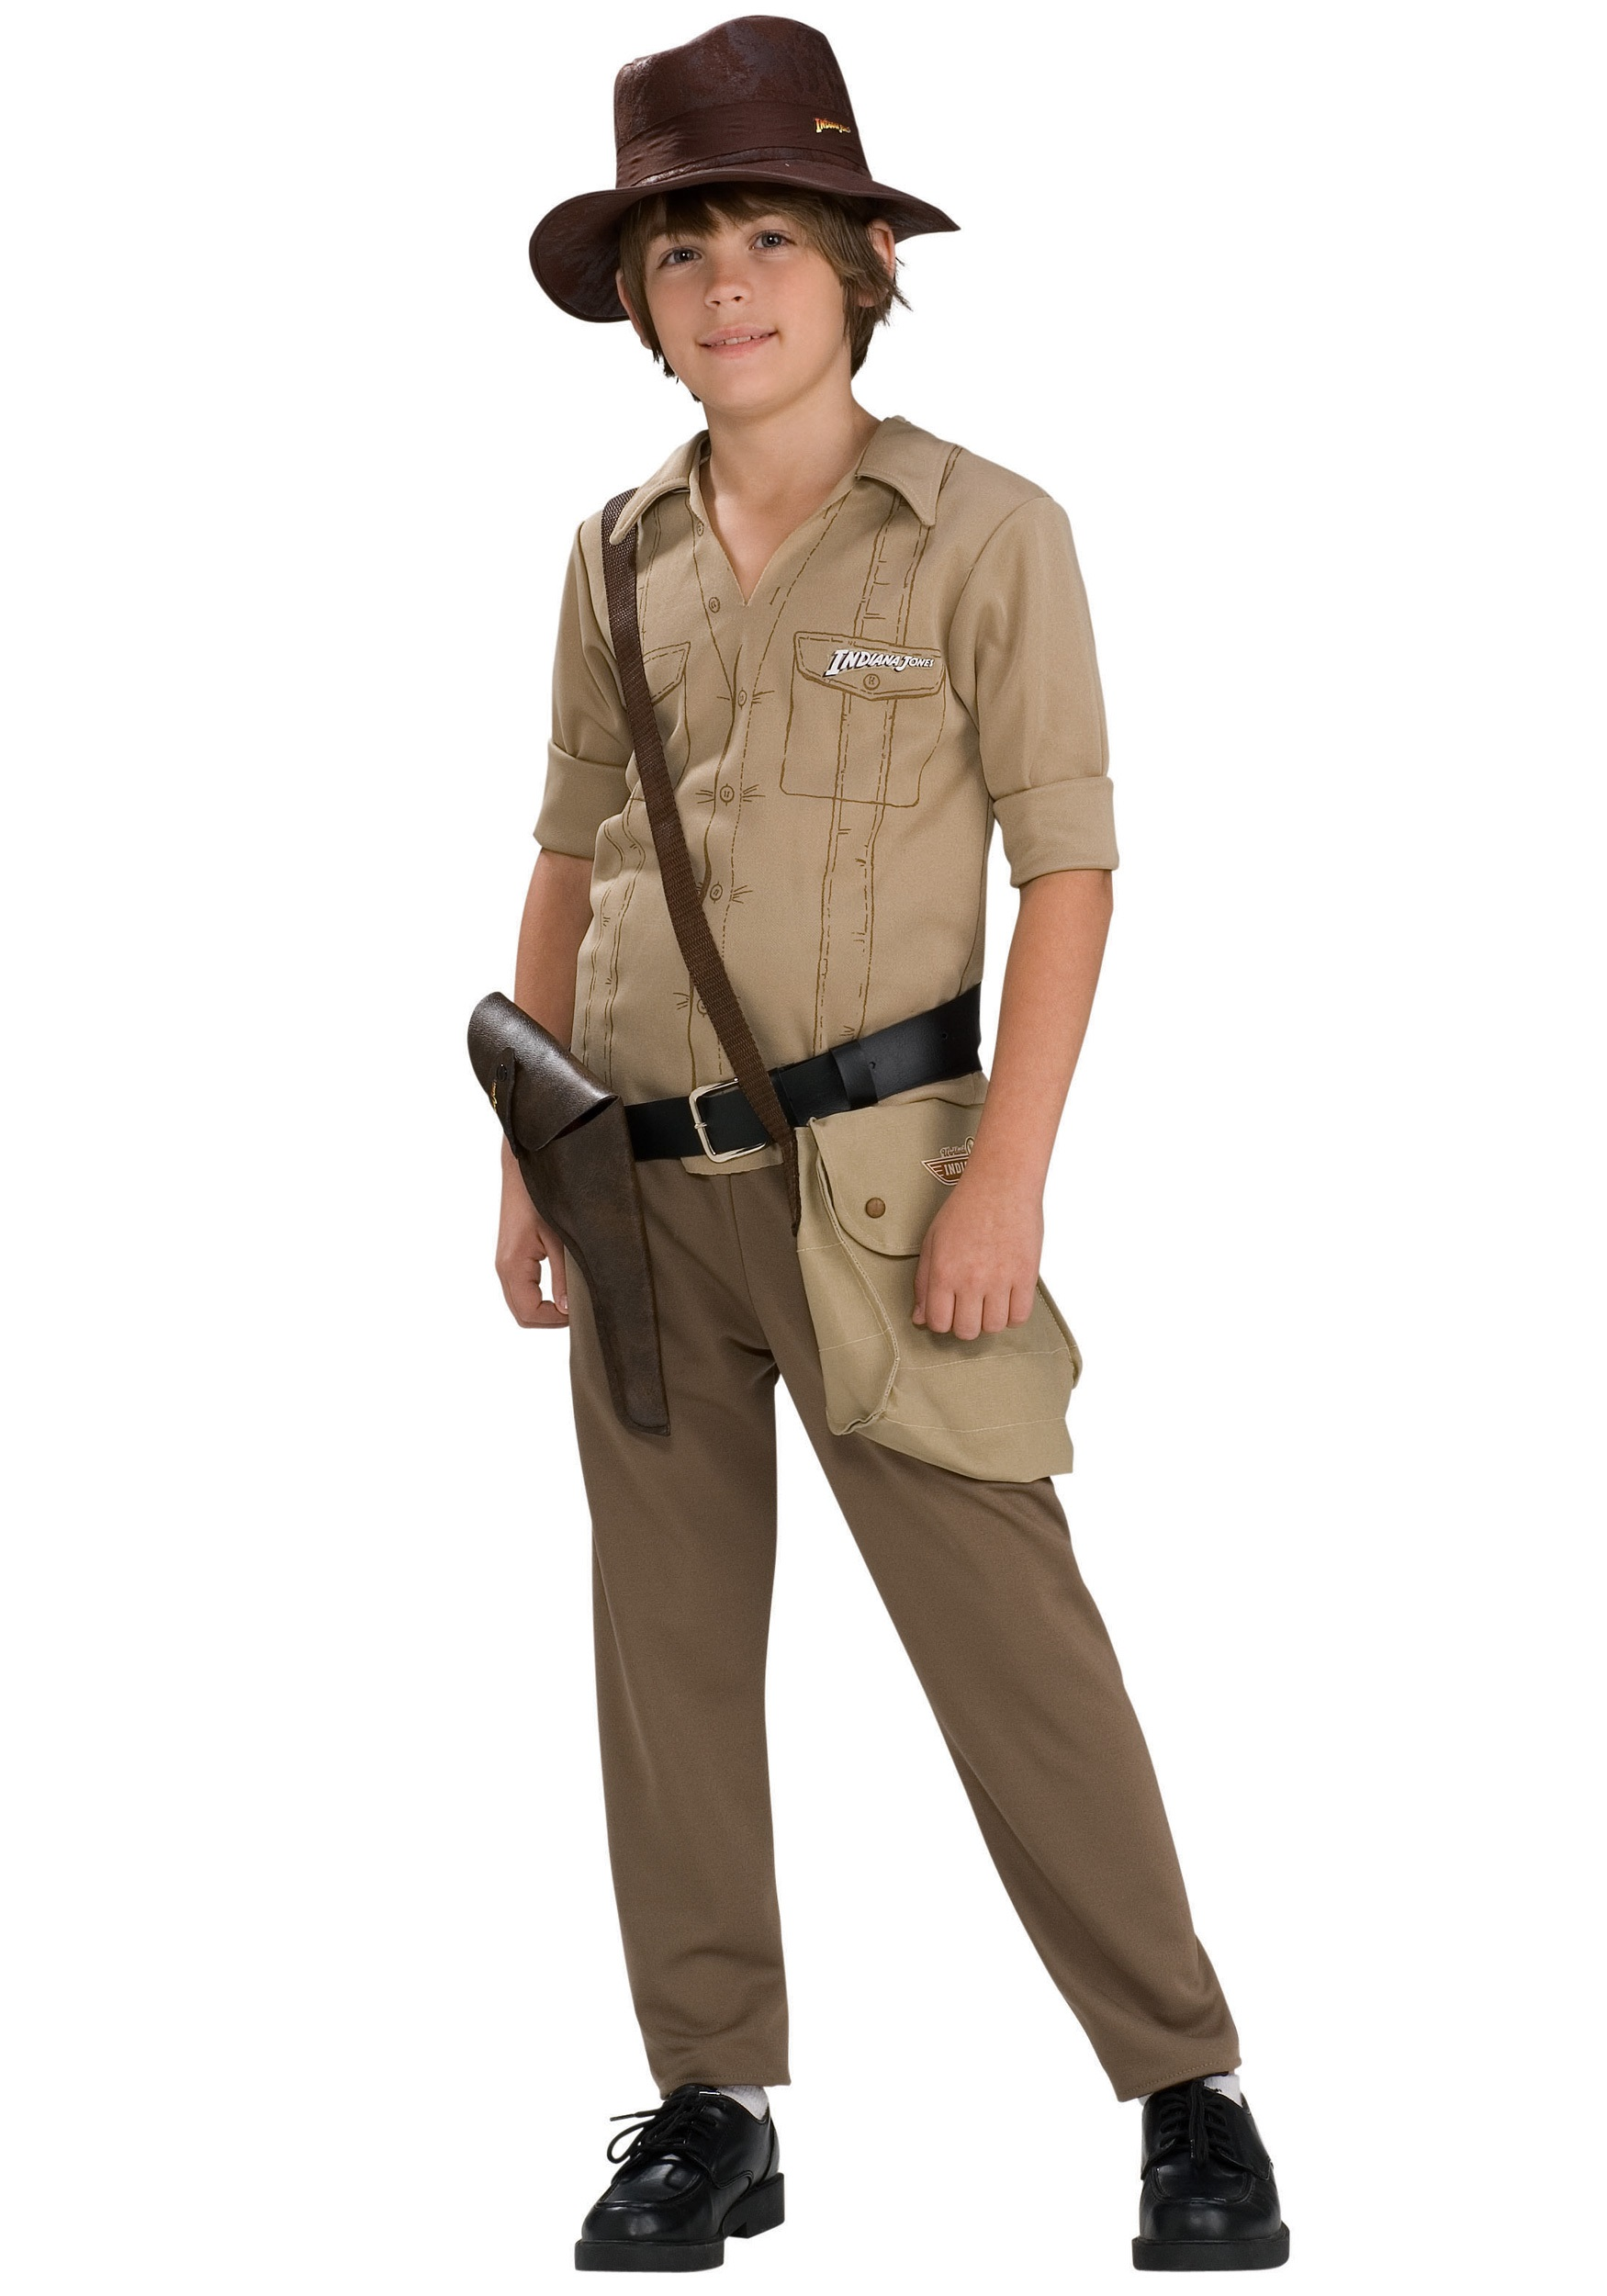 Kids Indiana Jones Costume  sc 1 st  Halloween Costumes & Kids Indiana Jones Costume - Halloween Costumes